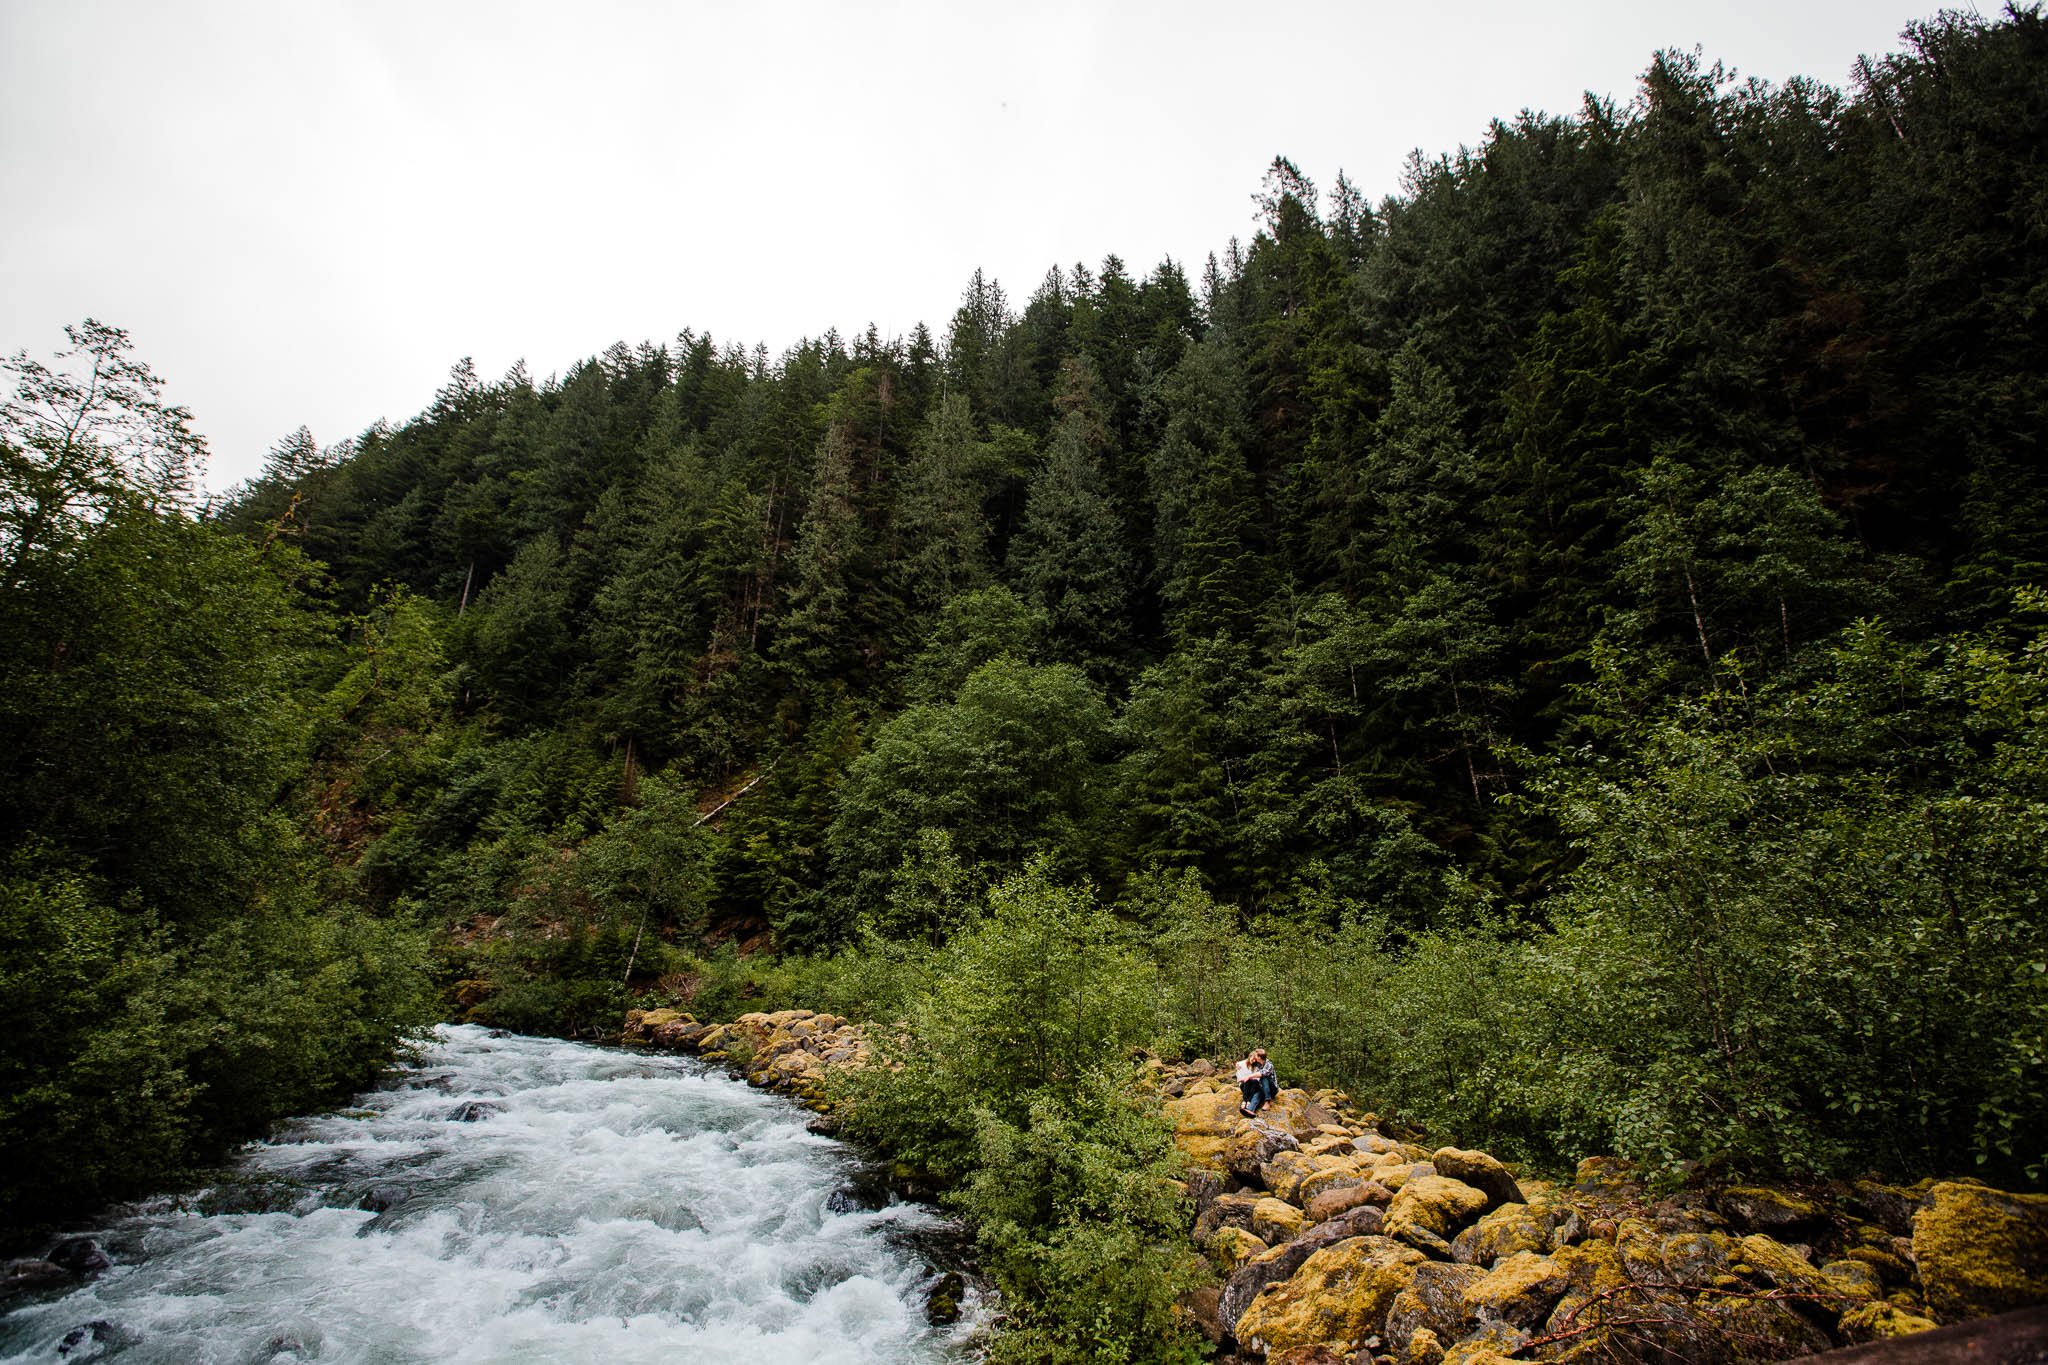 Wide angle picture of couple sitting on moss covered rocks in forest  by   Folley Creek near Folley Lake along Folley Service Road in Chilliwack British Columbia during outdoor engagement photography session in the mountains with Mimsical Photography.    Outdoor adventure photographer based in Langley, British Columbia. Real fun engagement photos for outdoor enthusiasts in the lower mainland. romantic pictures of couple